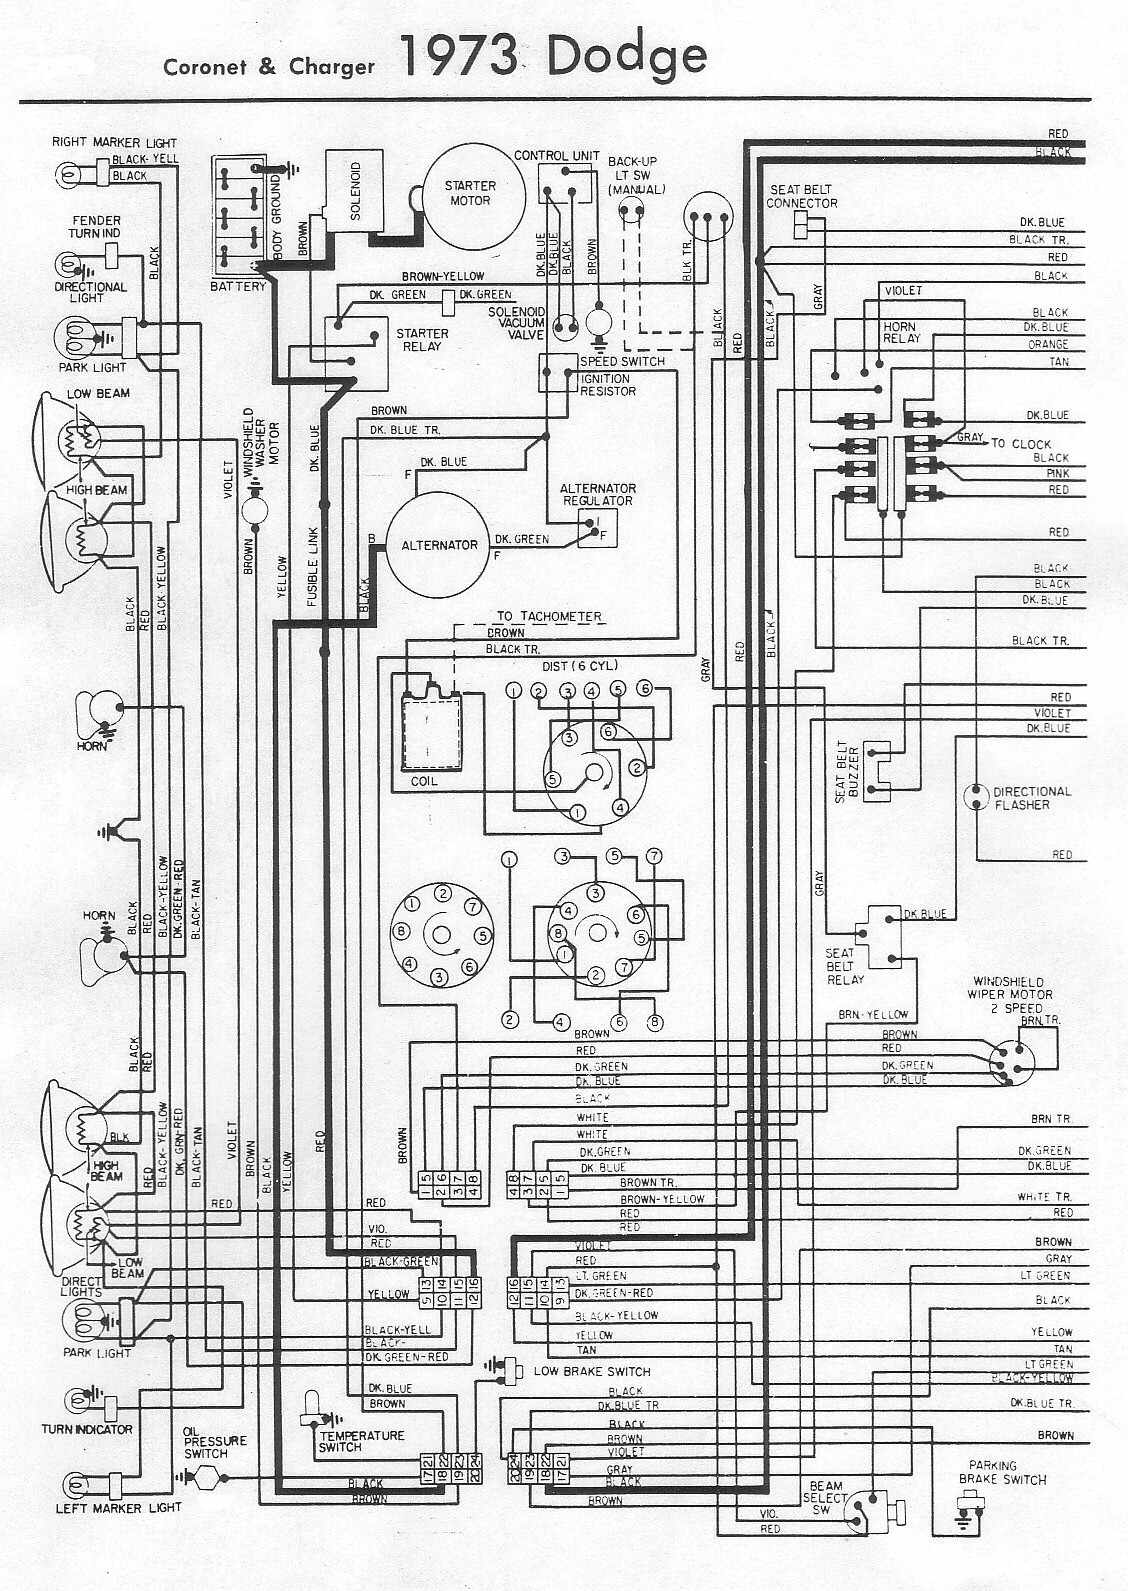 91 dodge wiring diagram diagram base website wiring diagram ...  diagram base website full edition - premiocivitas